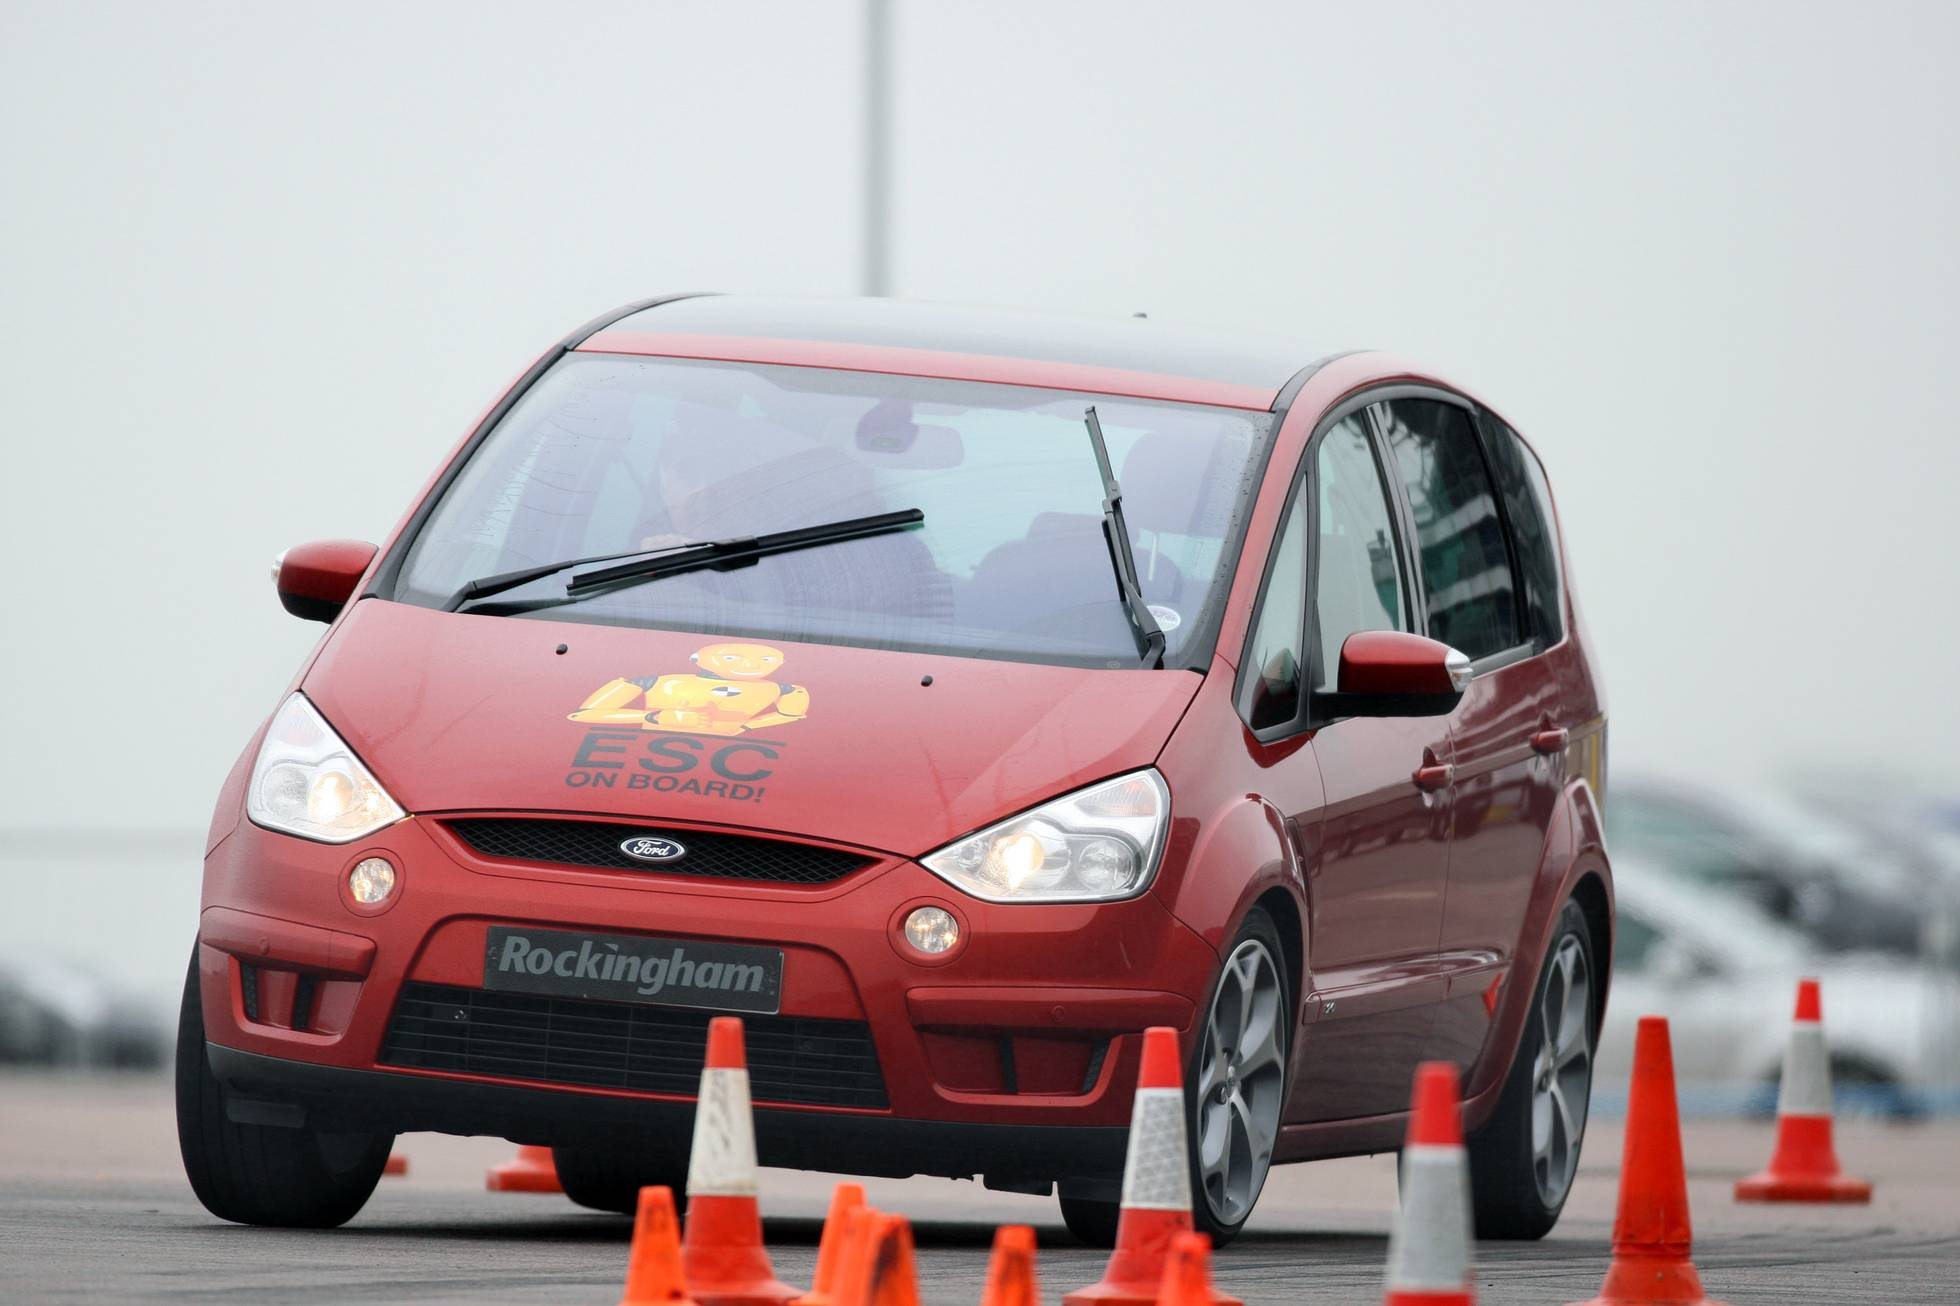 Ford S-Max with ESC